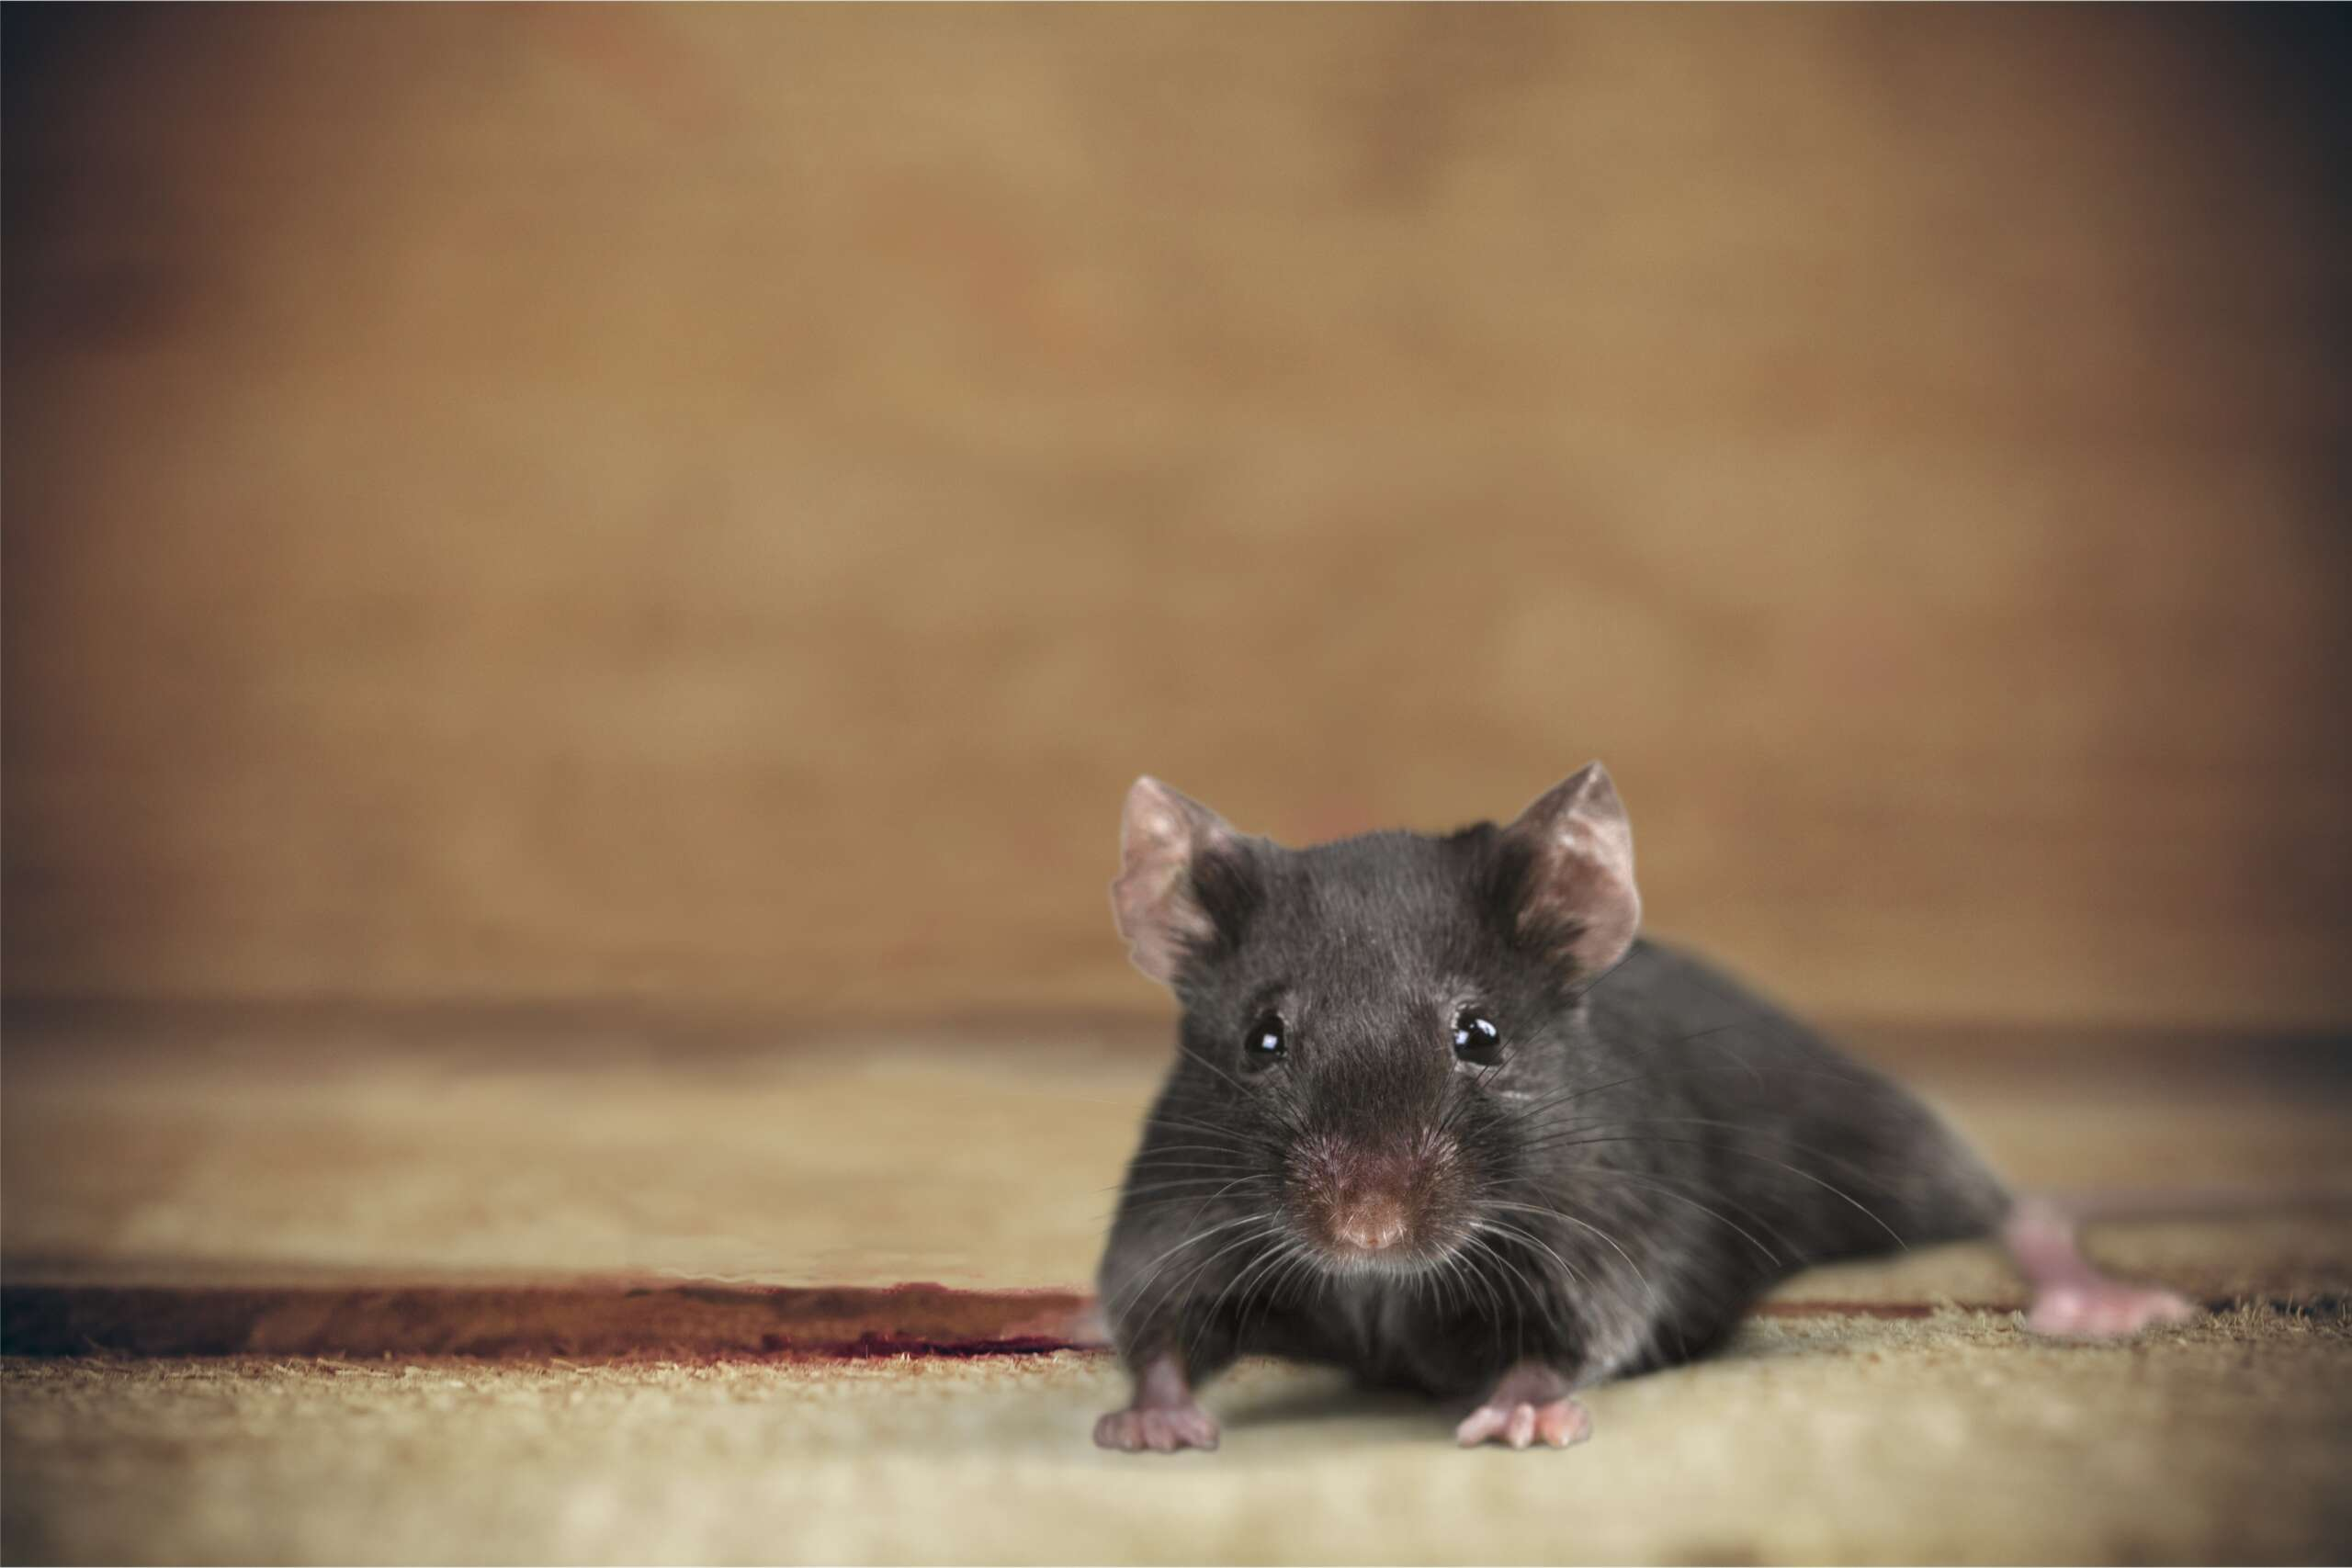 rid-all pest control will take care of your rodent problem